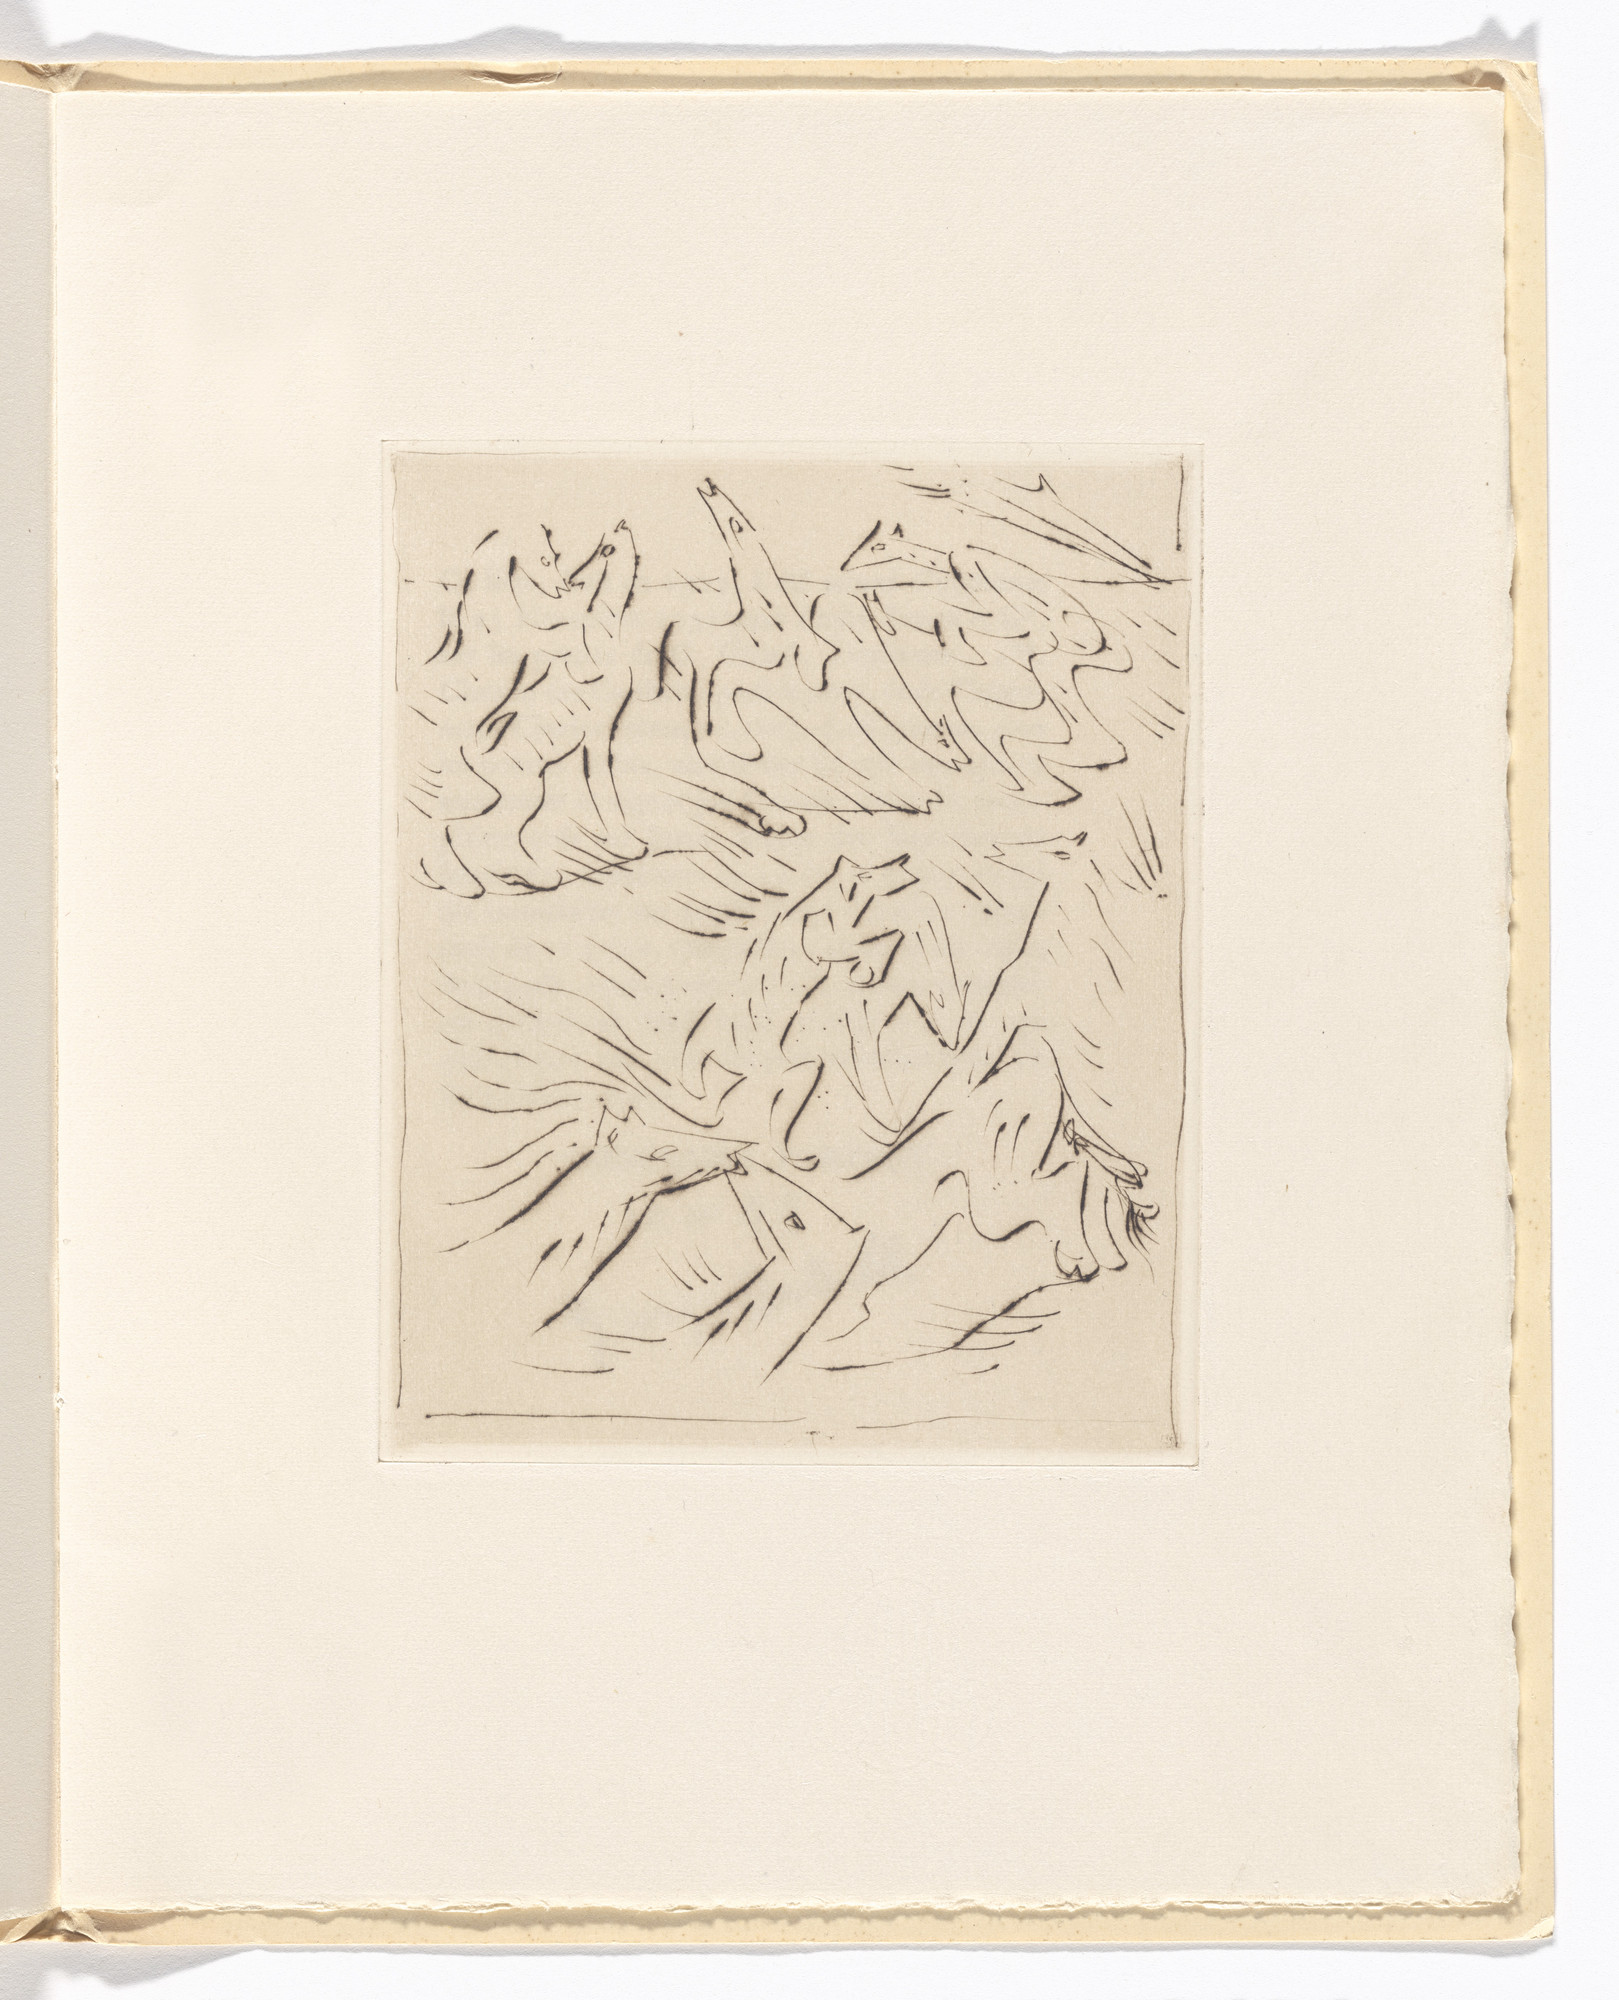 André Masson. Plate (folio 10) from L'Anus solaire. 1931